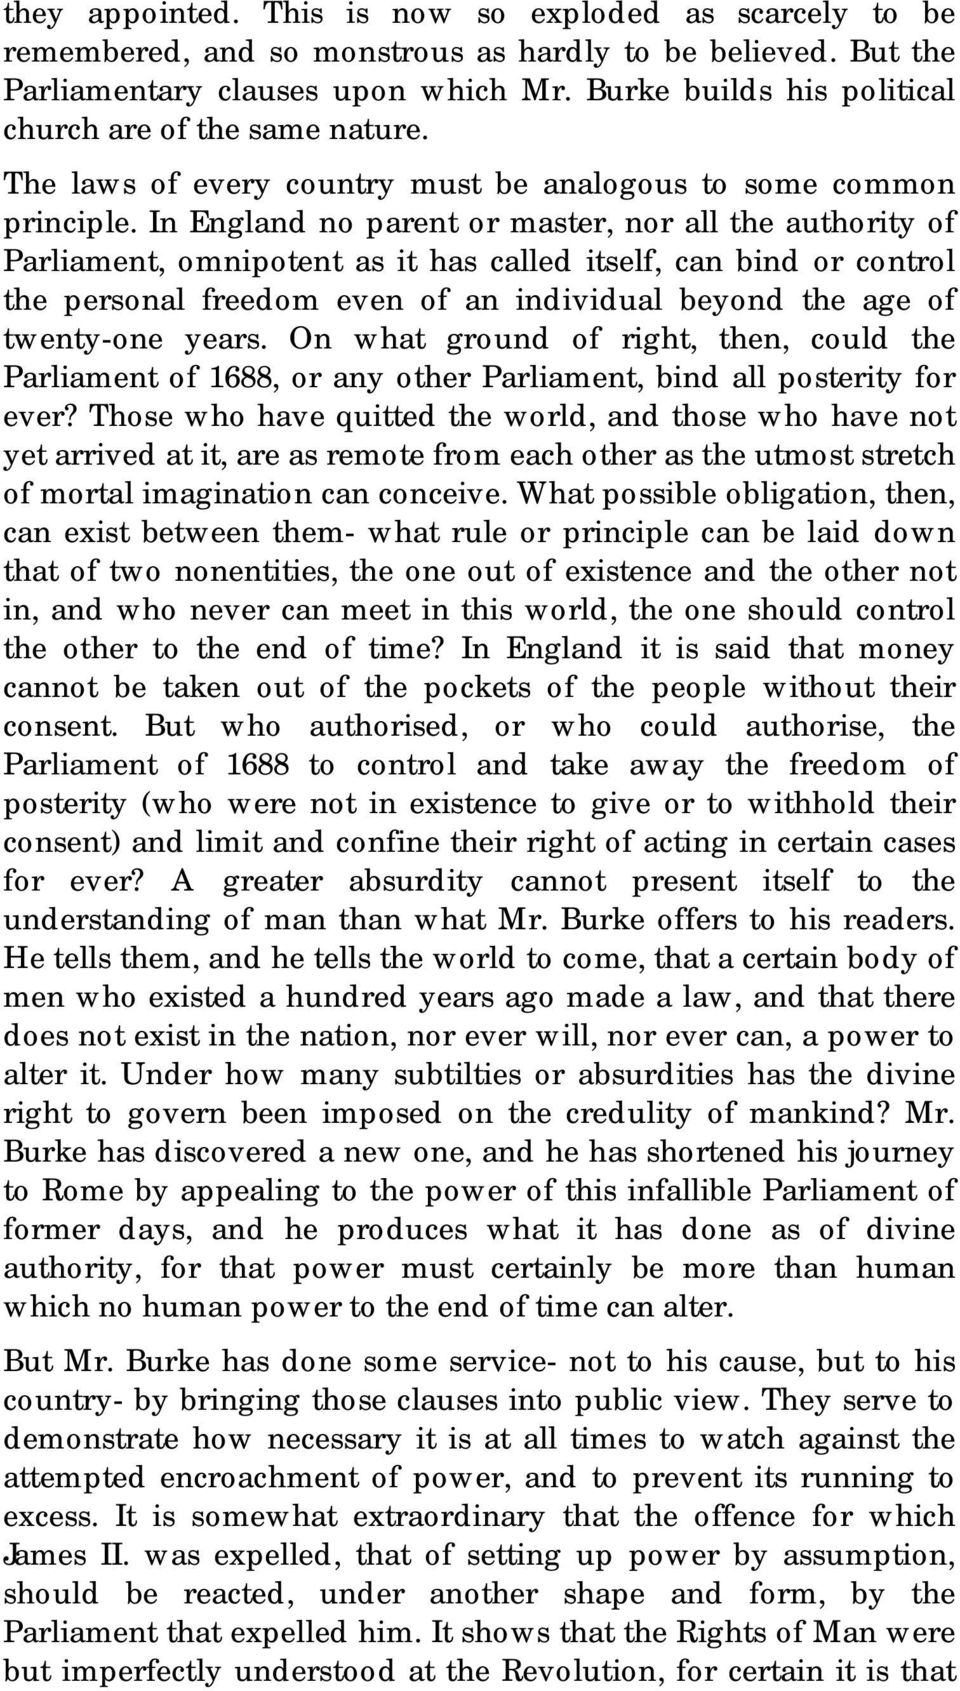 In England no parent or master, nor all the authority of Parliament, omnipotent as it has called itself, can bind or control the personal freedom even of an individual beyond the age of twenty-one